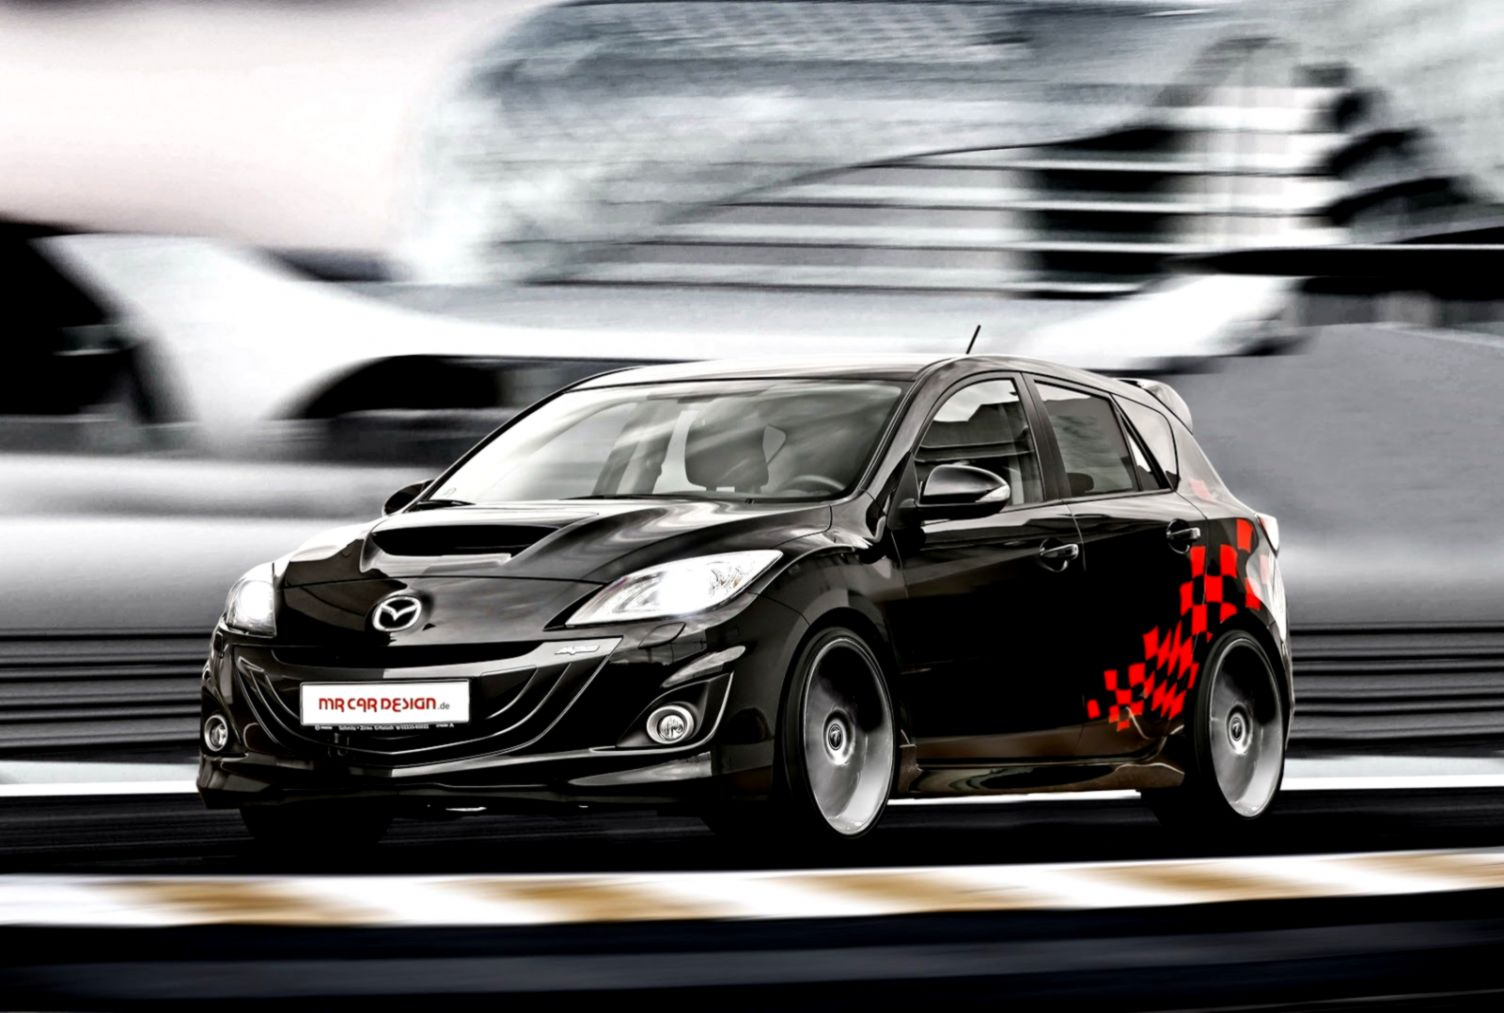 Mazda 3 2013 Wallpaper Wallpapers Mhytic 1504x1013